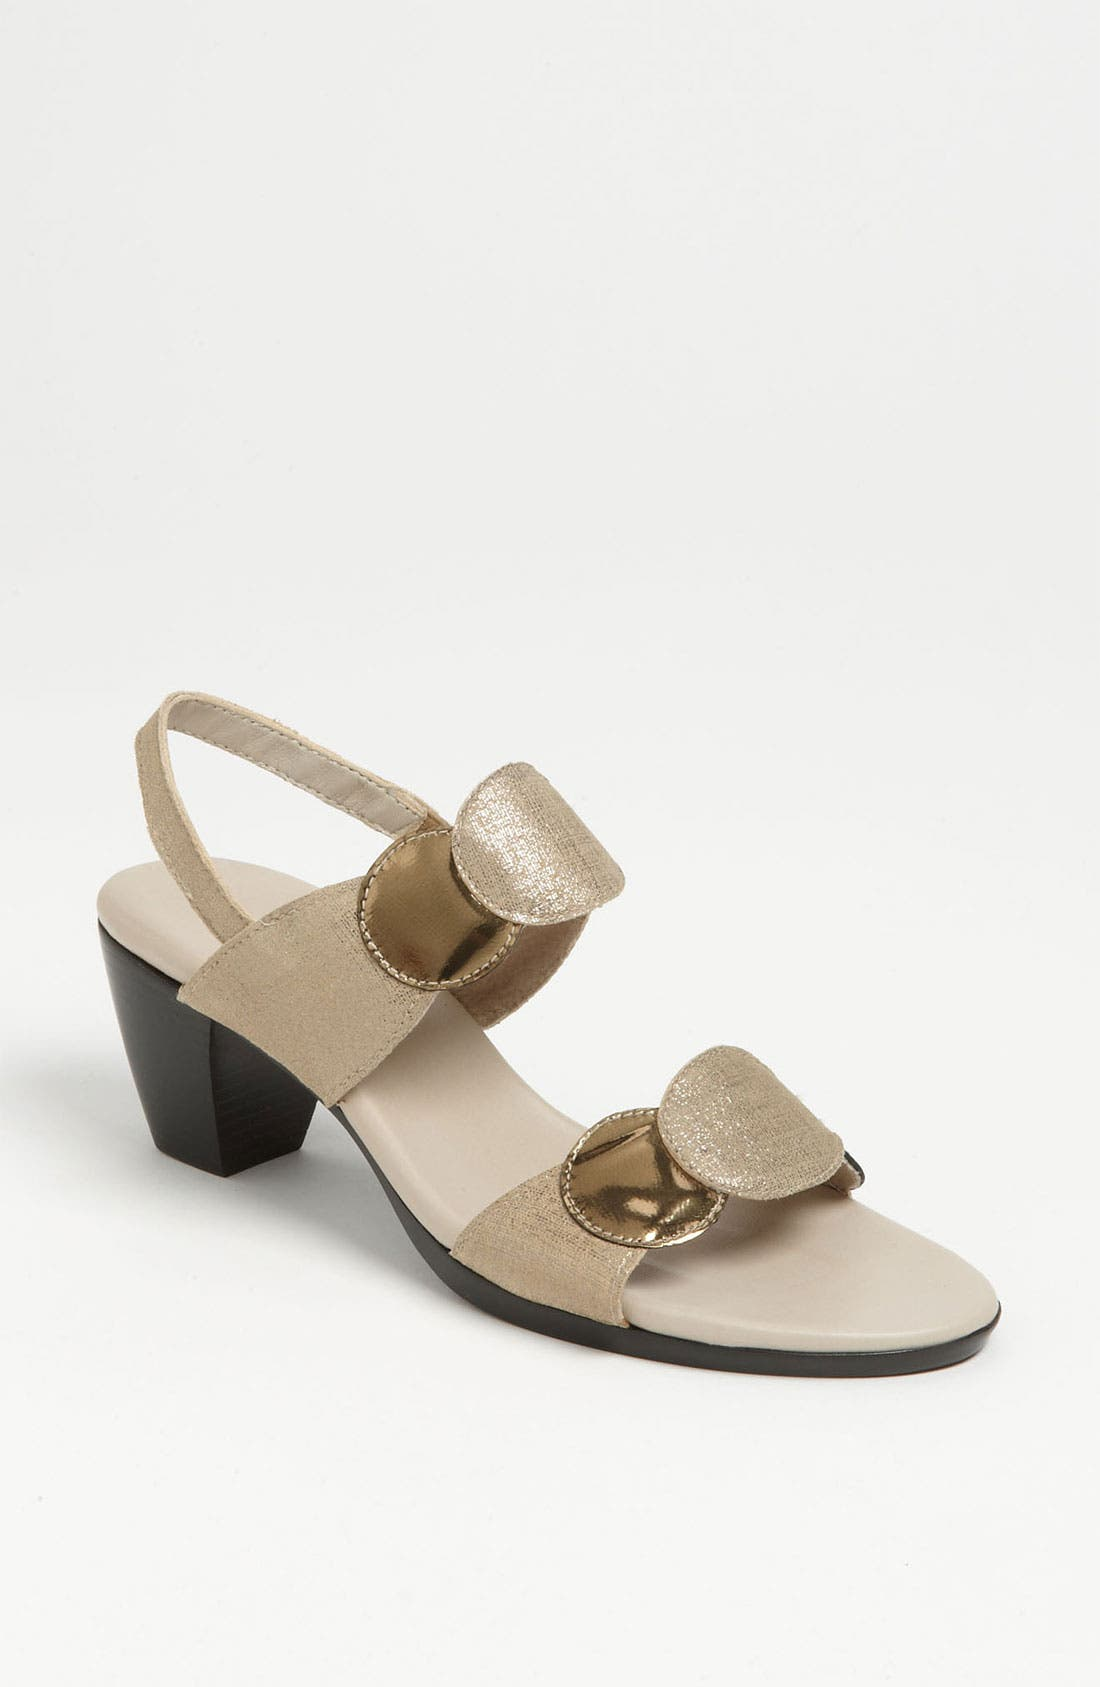 Alternate Image 1 Selected - Munro 'Solar' Sandal